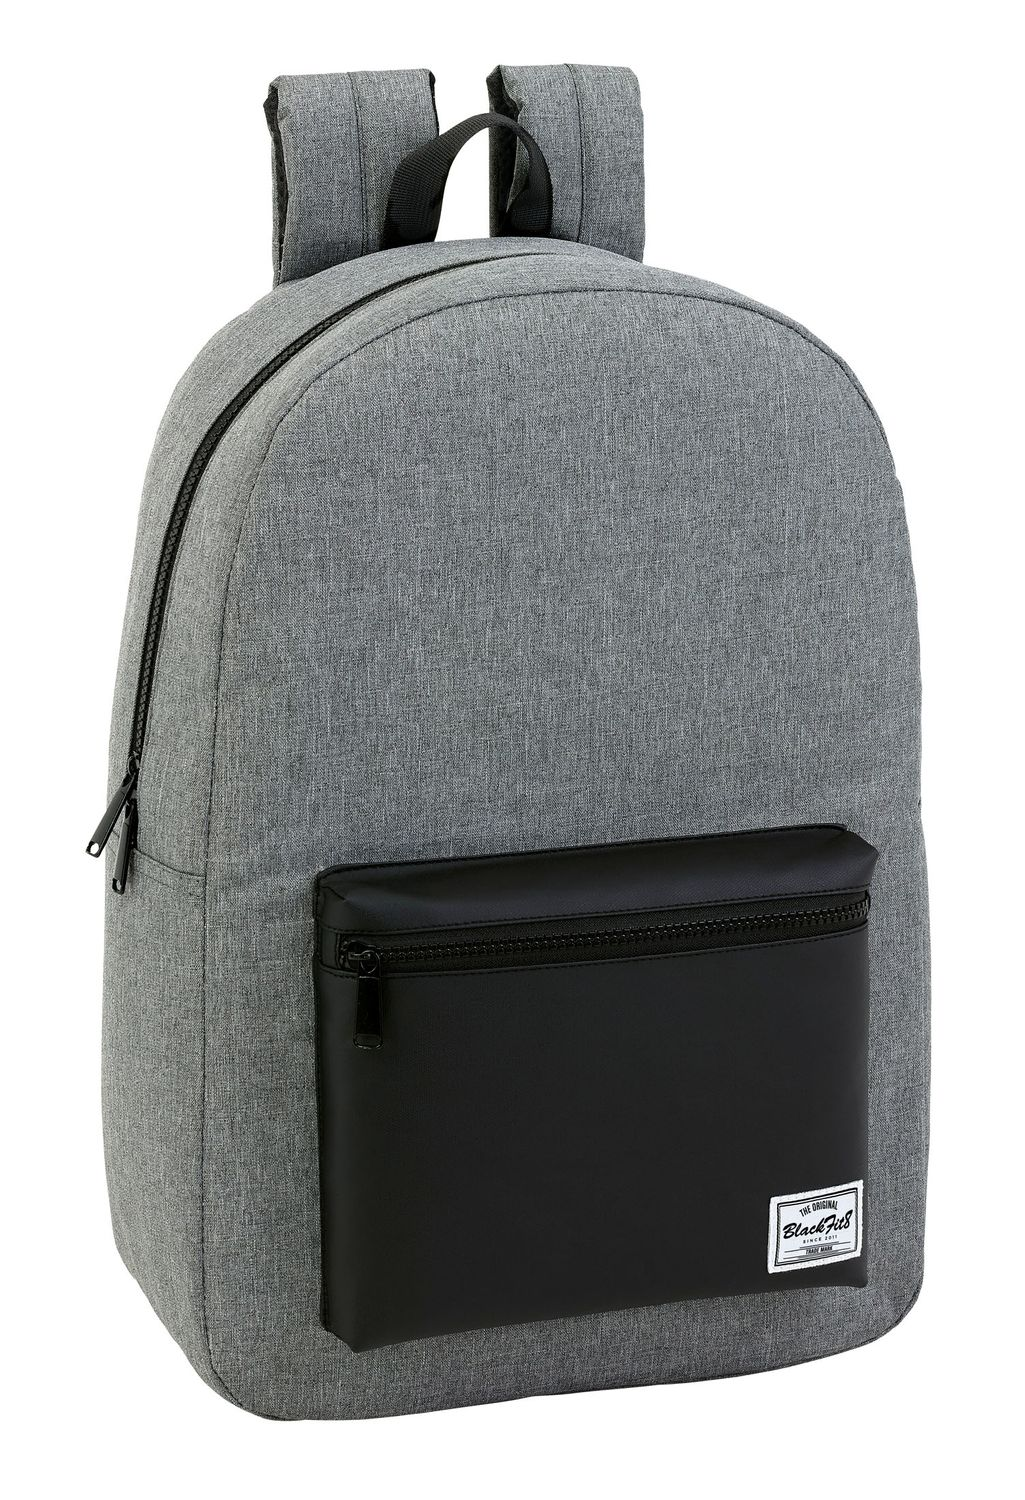 "Blackfit Black & Grey Laptop Backpack 15.6"" – image 1"